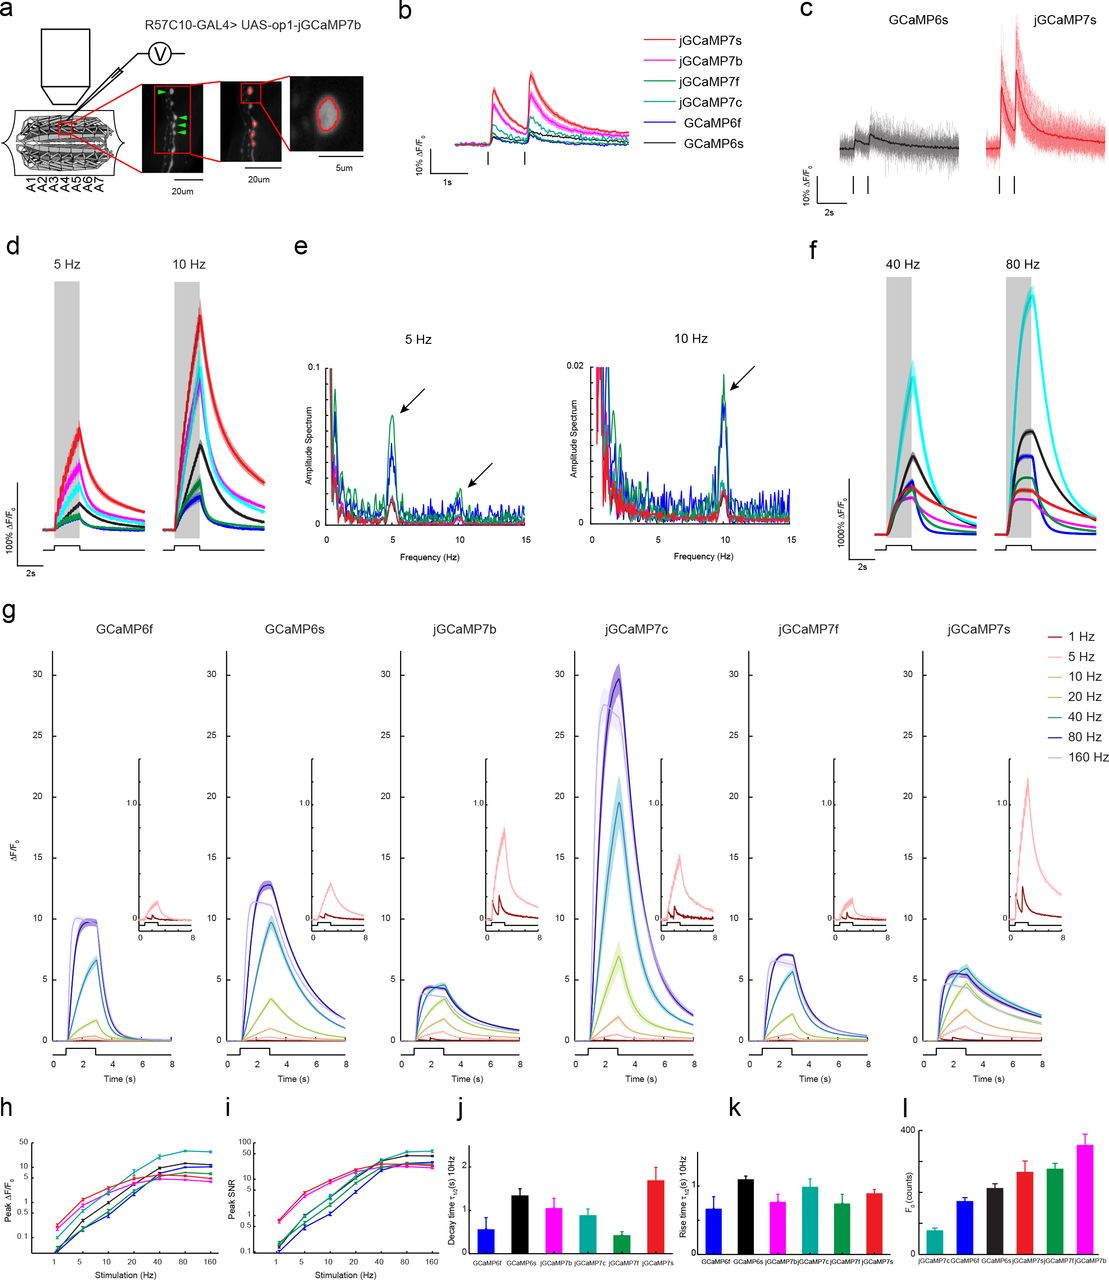 High-performance GFP-based calcium indicators for imaging